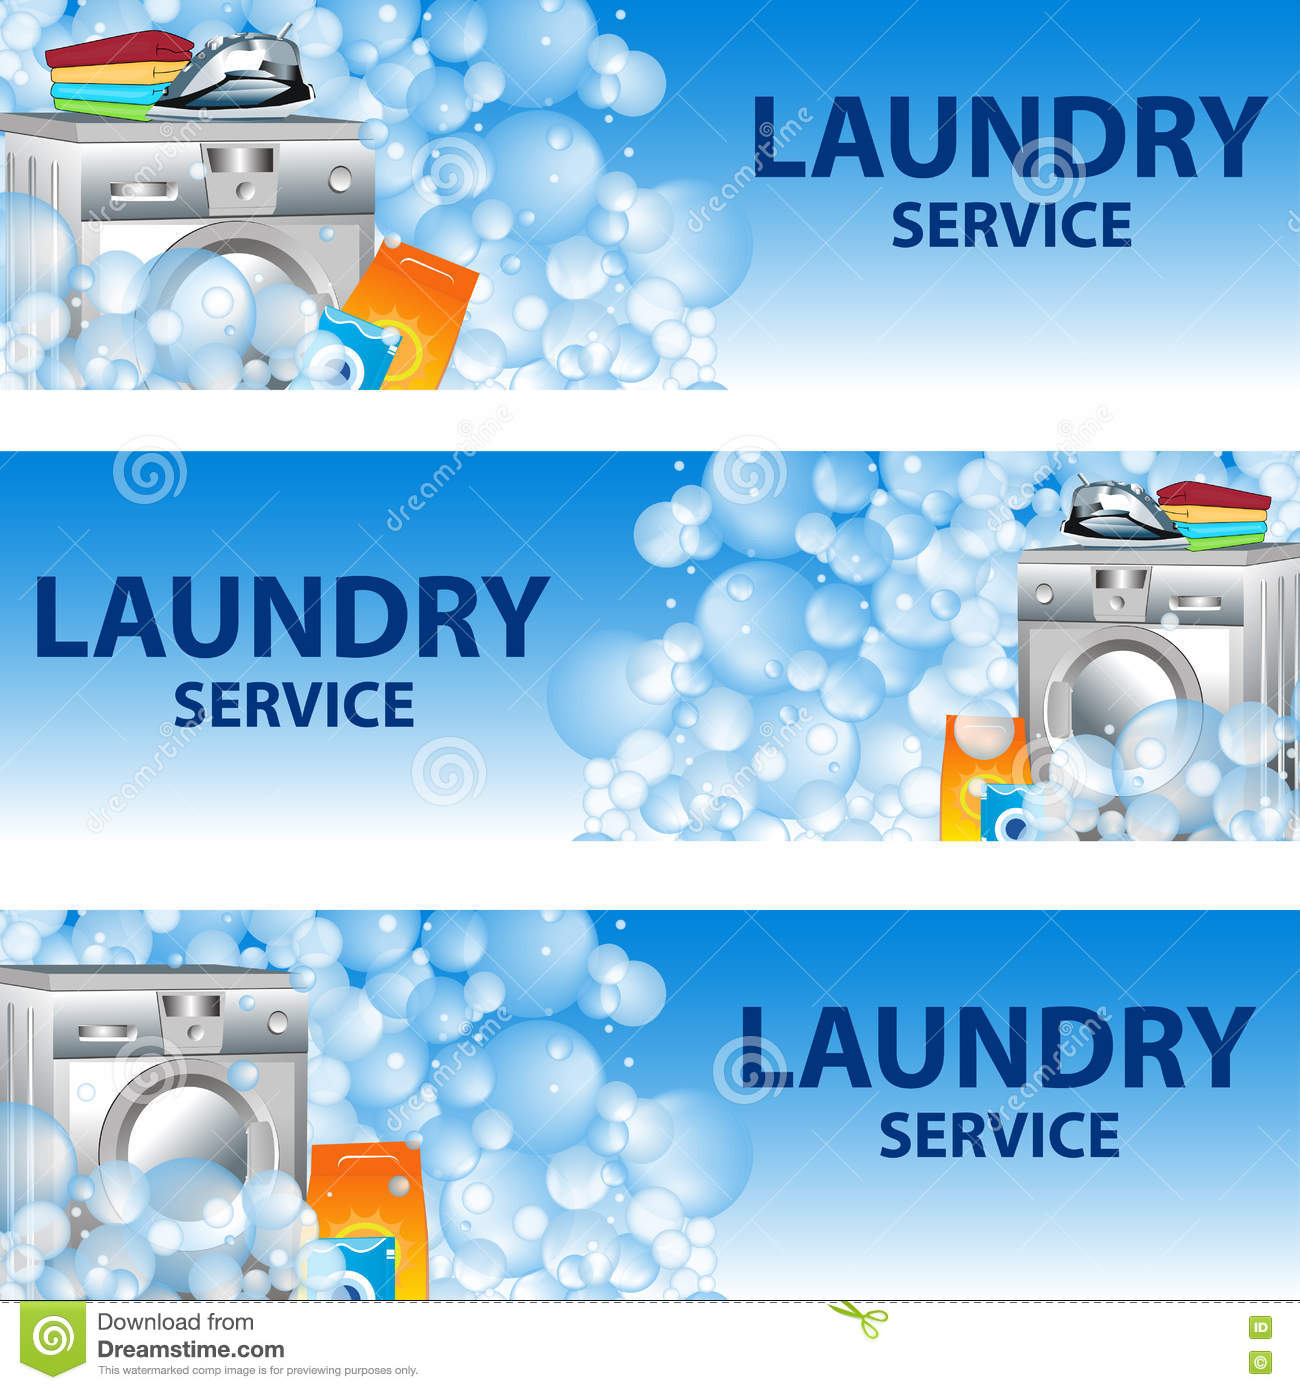 laundry services flyer template stock photography image  set banners laundry service poster template for house cleaning royalty stock image